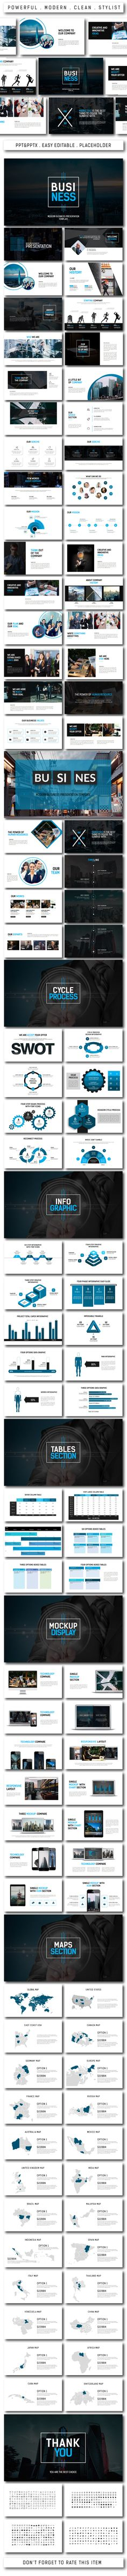 MAIN FILE:Note : All Image Is Not IncludeEasy to change colors, Fully editable text, photos, Shape & other elements Unique Custom Business Powerpoint Templates, Powerpoint Presentation Templates, Keynote Template, Powerpoint Slide Designs, Brochure Inspiration, Graphic Design Templates, Calendar Design, Layout Template, Web Design